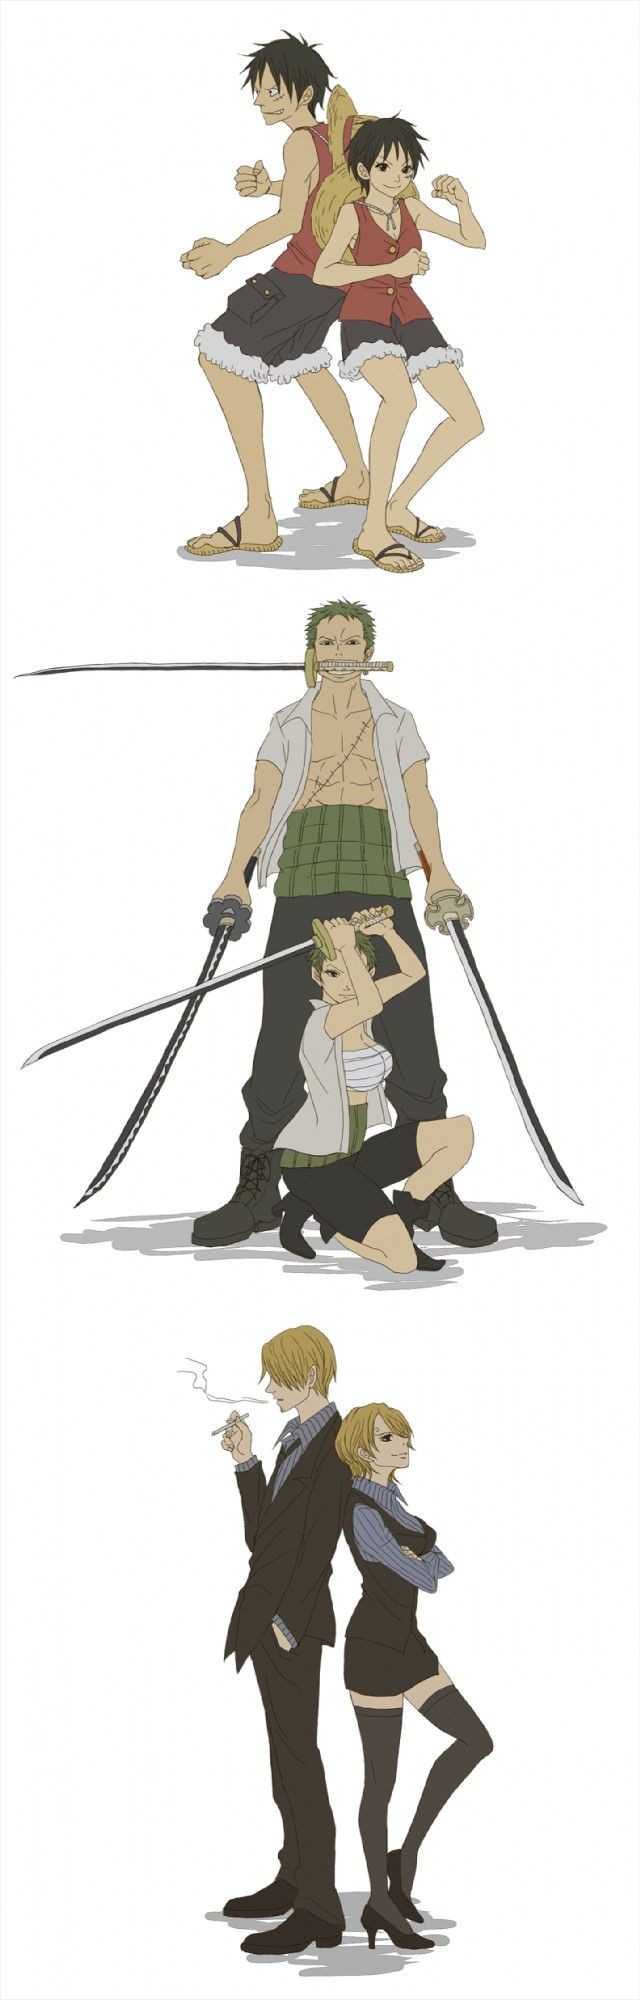 Gender-bent One piece characters (Luffy, Zoro and Sanji)! Isn't this epic?!